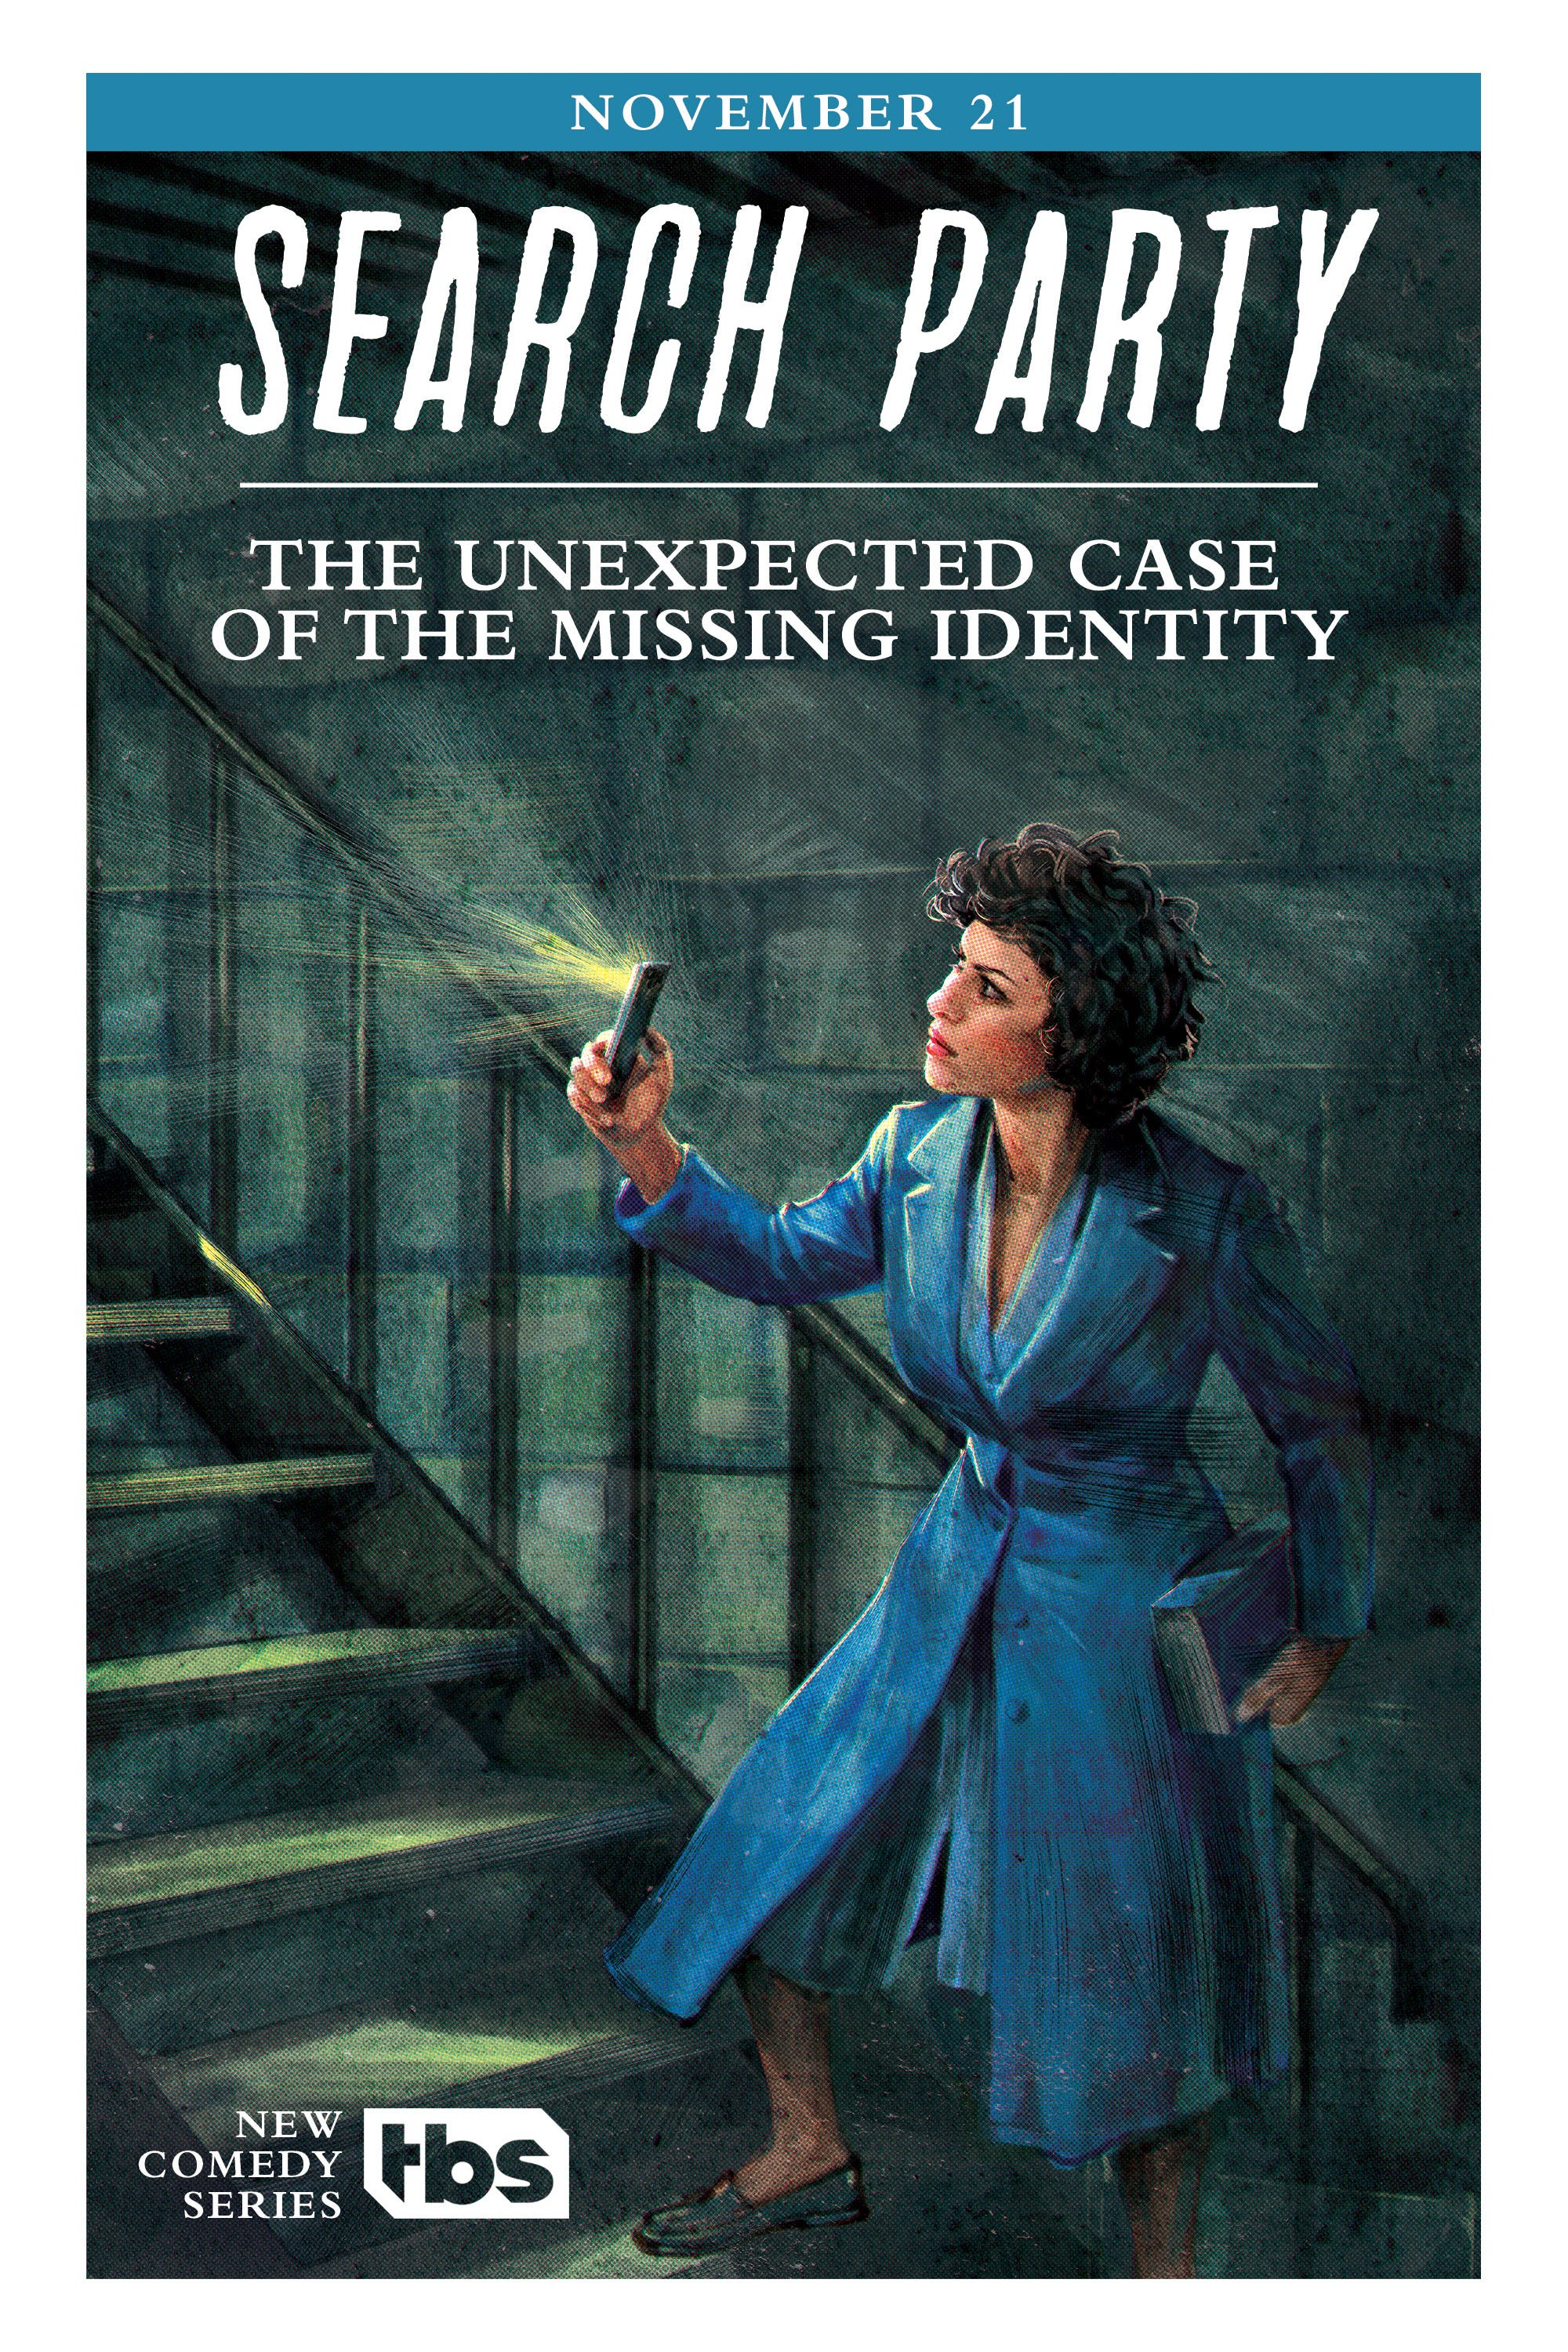 Nancy Drew Inspired Posters For Search Party – Missing Person Posters